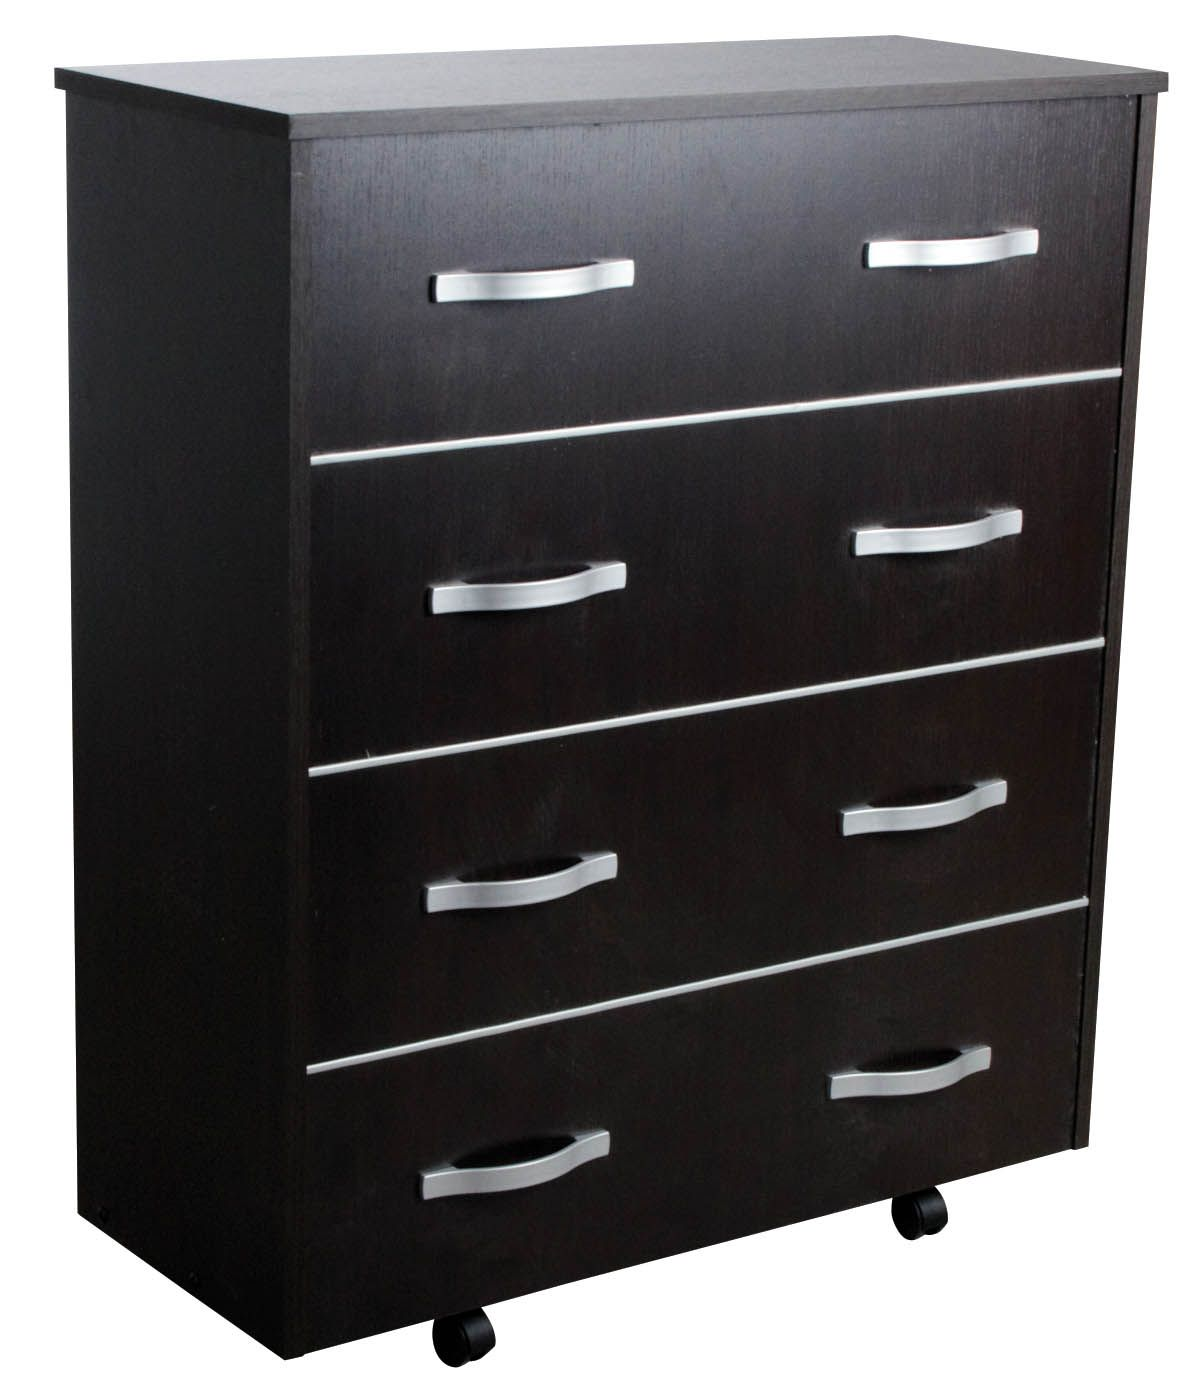 armoire lit d 39 appoint escamotable pisolo. Black Bedroom Furniture Sets. Home Design Ideas